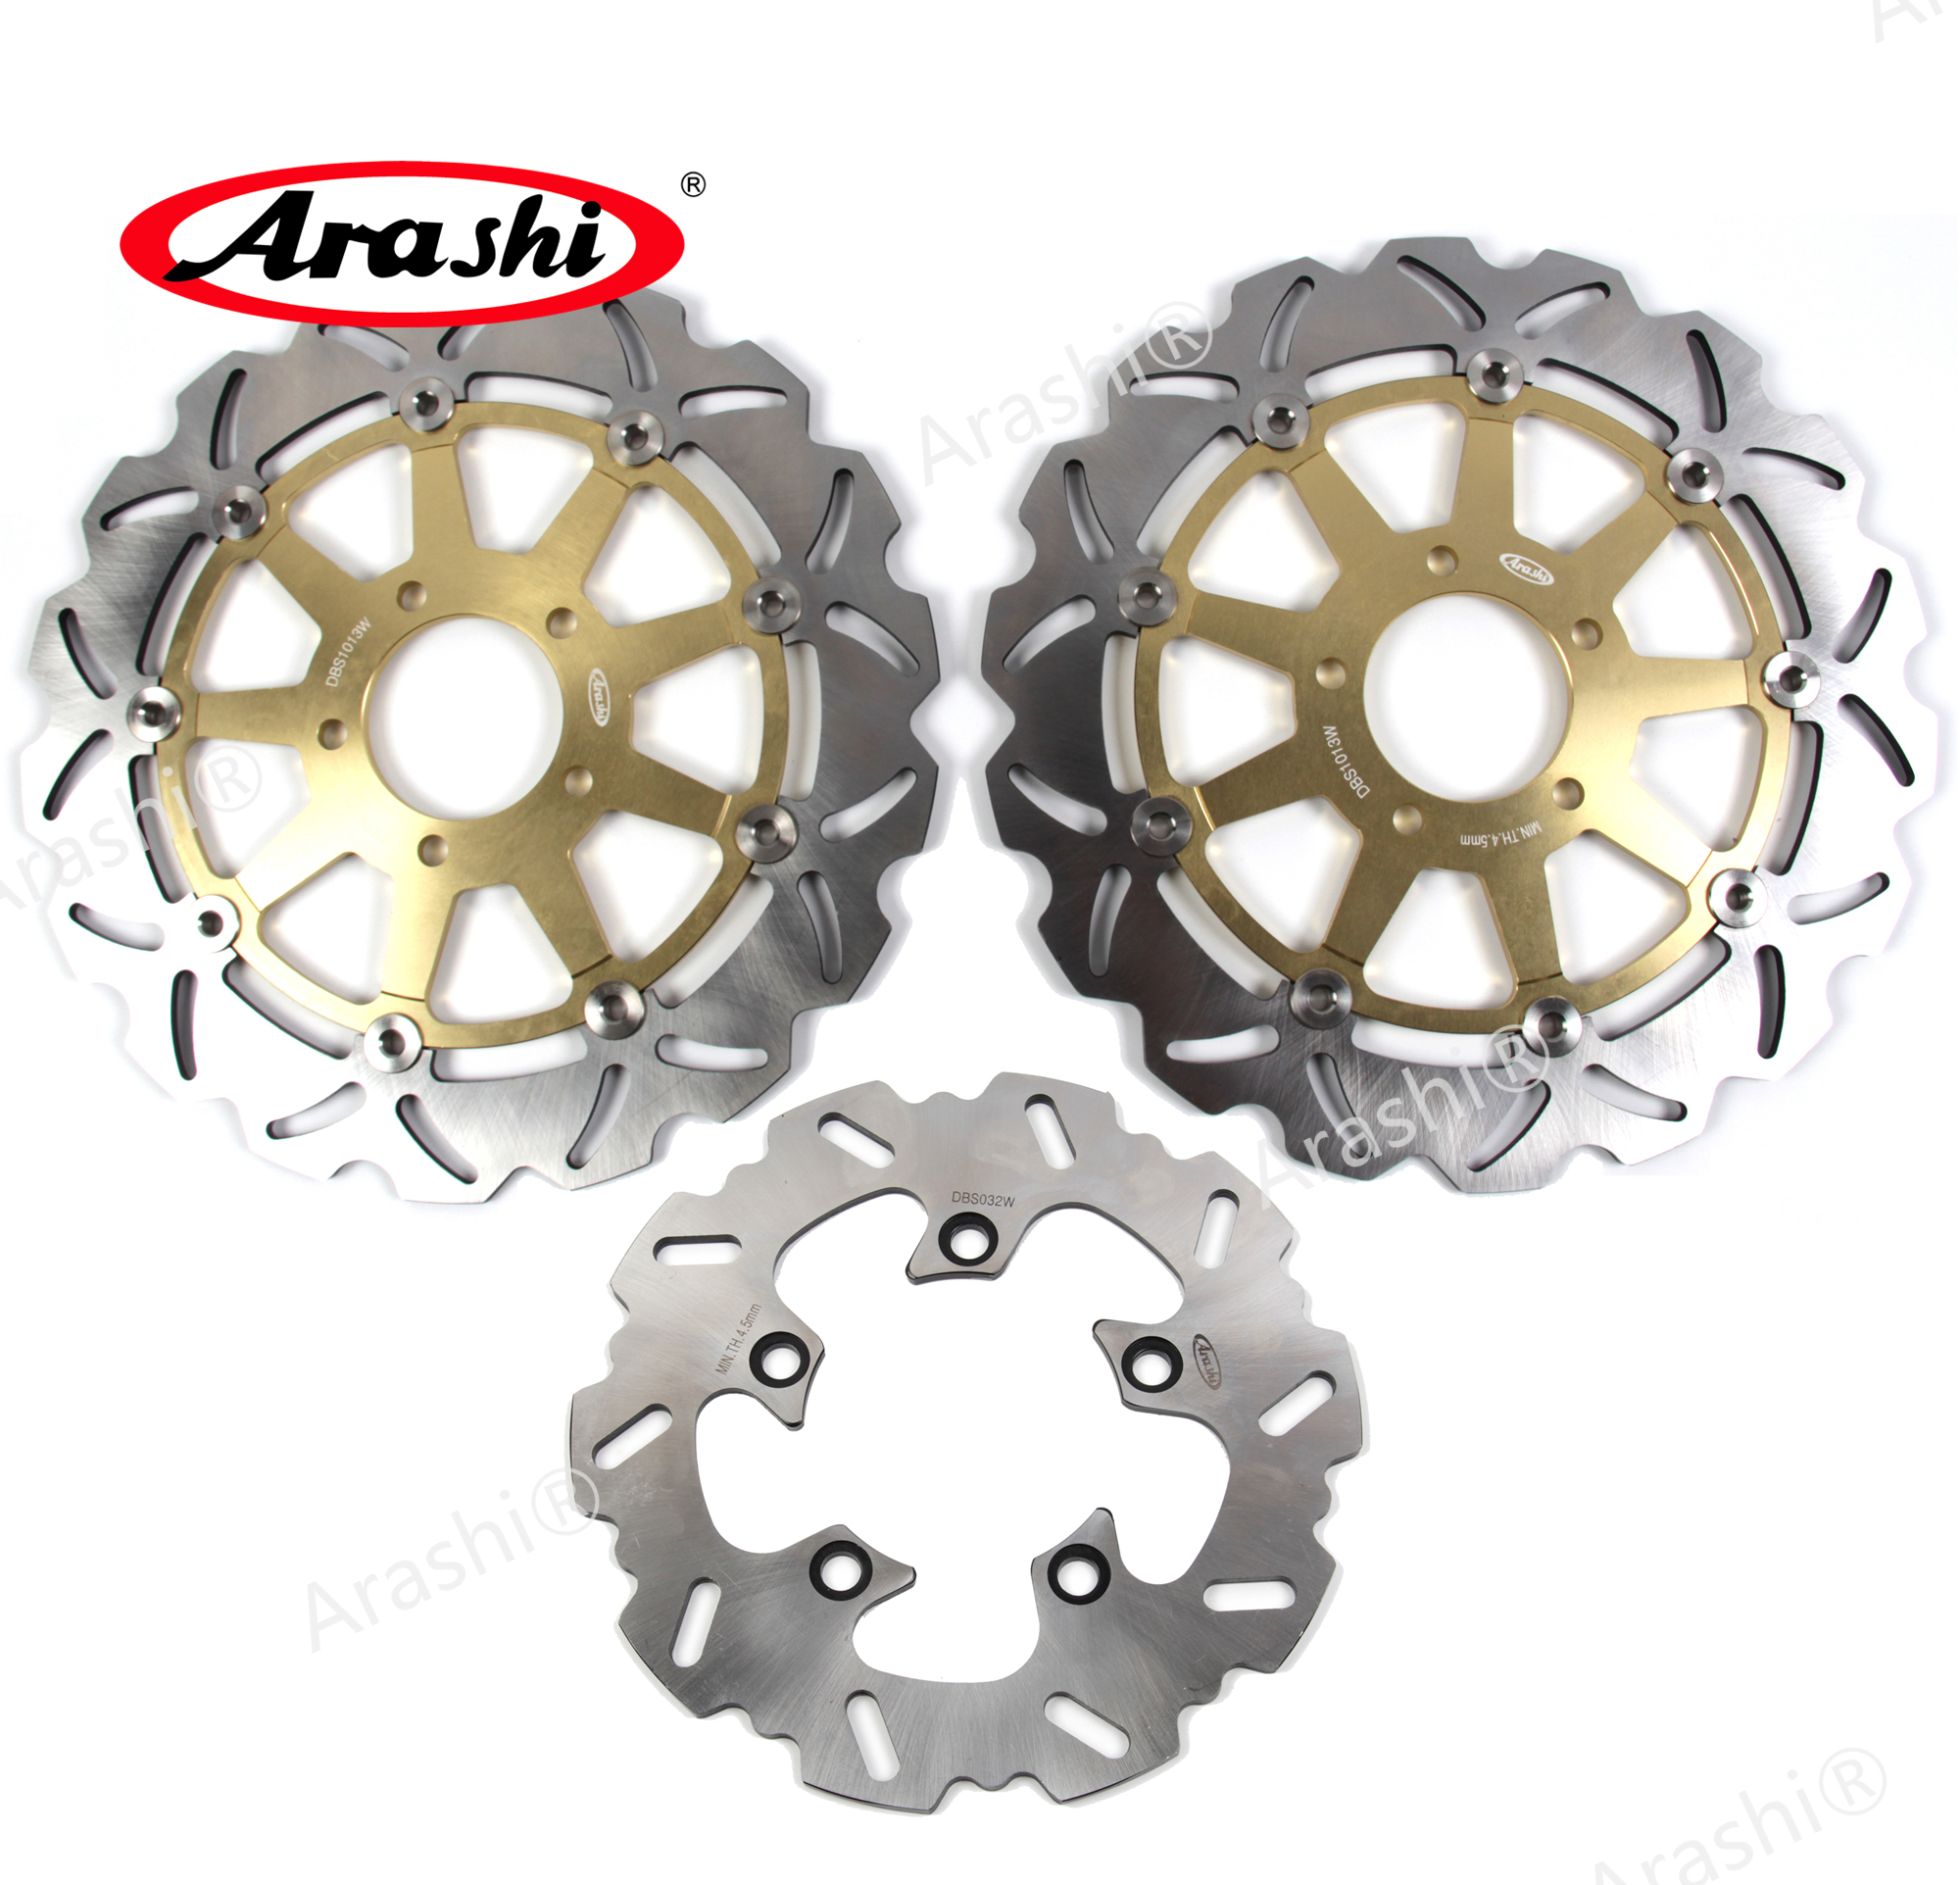 Arashi 1 Set GSX R 1000 CNC Floating Front Rear Brake Disc Brake Rotors For SUZUKI